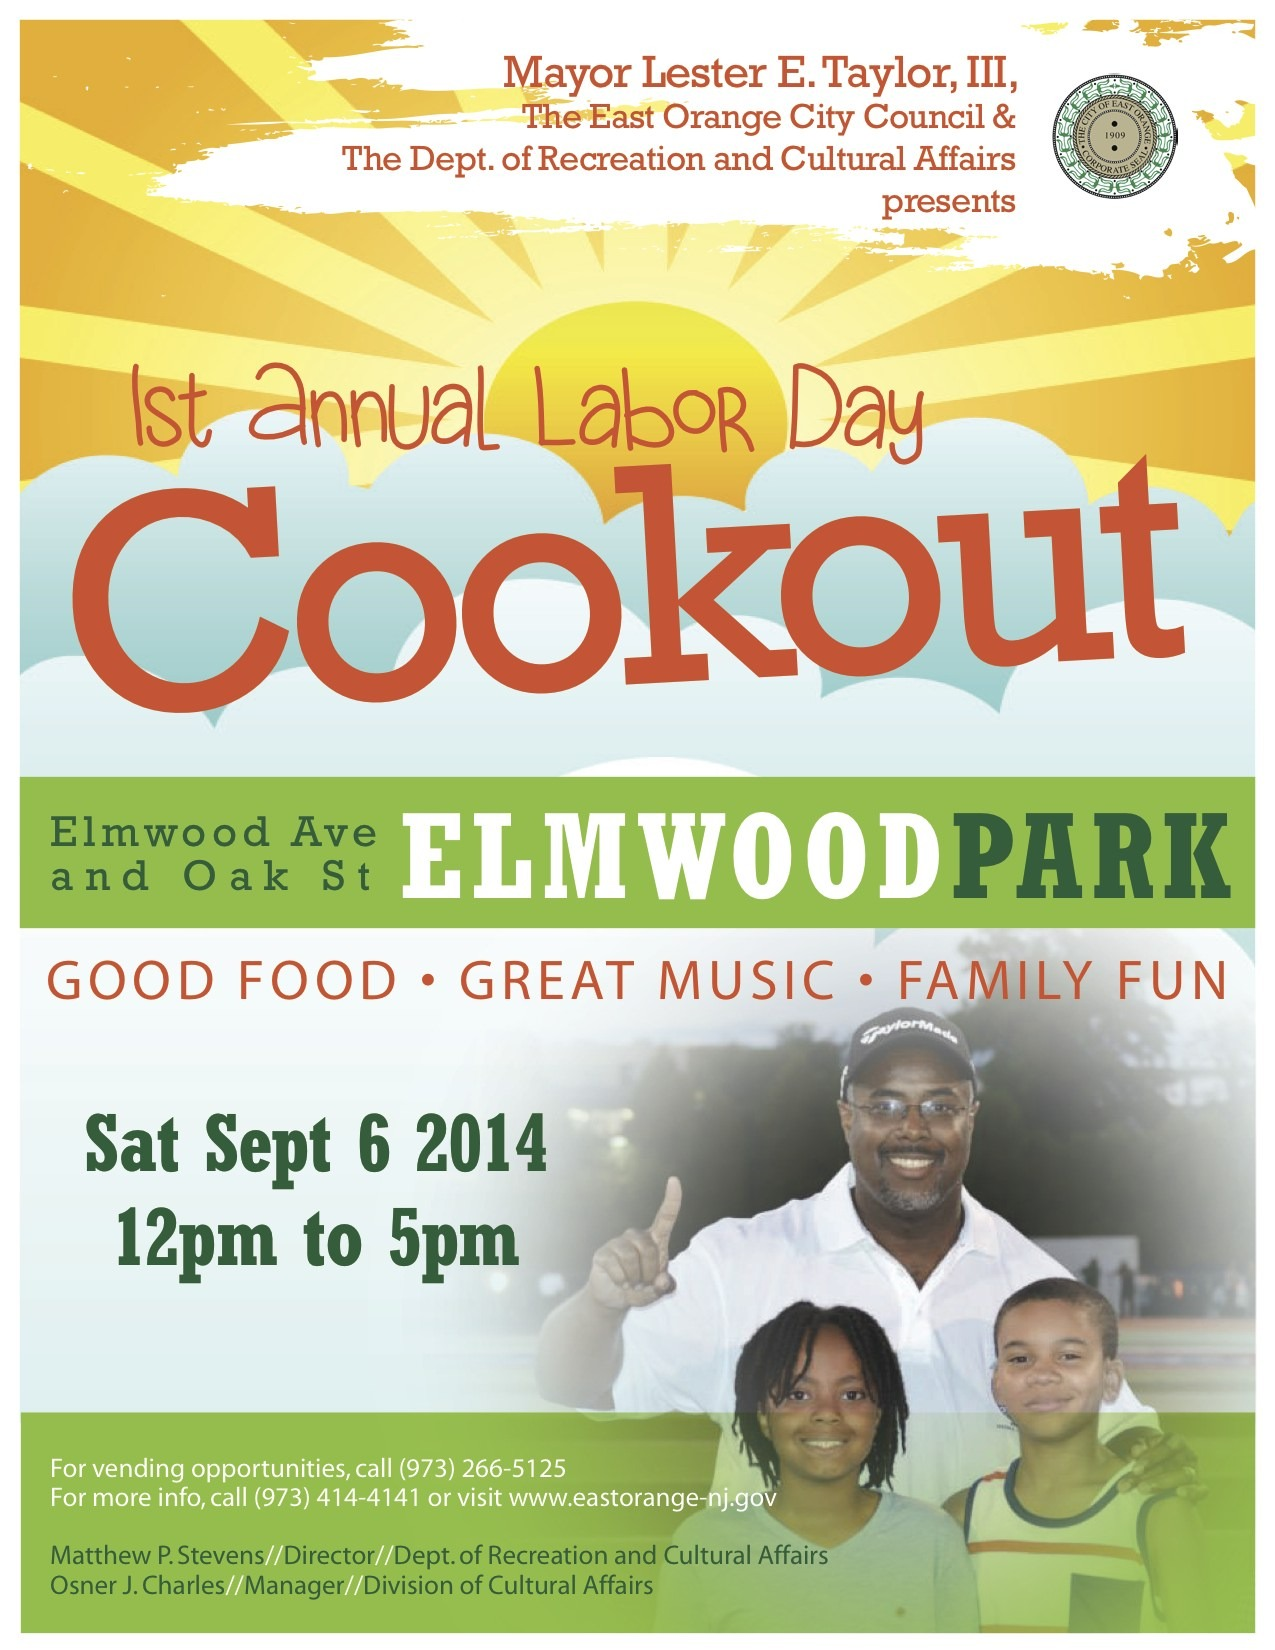 374bf145bfd6577f1802_CookoutFlier2.jpg